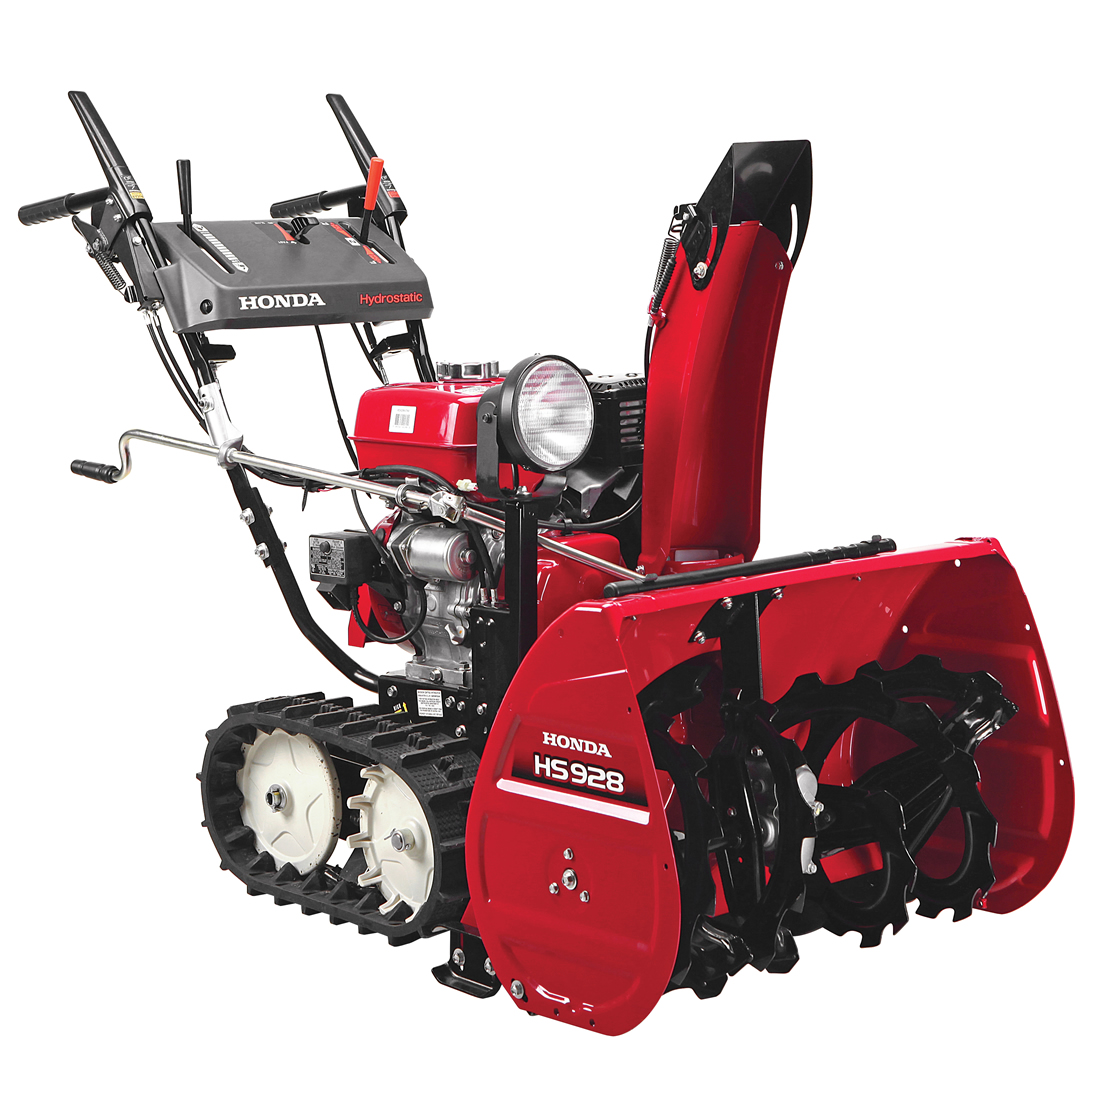 Speedztr 30 likewise How To Change A Honda Snowblower Spark Plug also 70dy5 Hookup Throttle Choke Linkage Sr928 Snapper besides Riding Mower Fuel Filter also Index. on troy bilt fuel pump